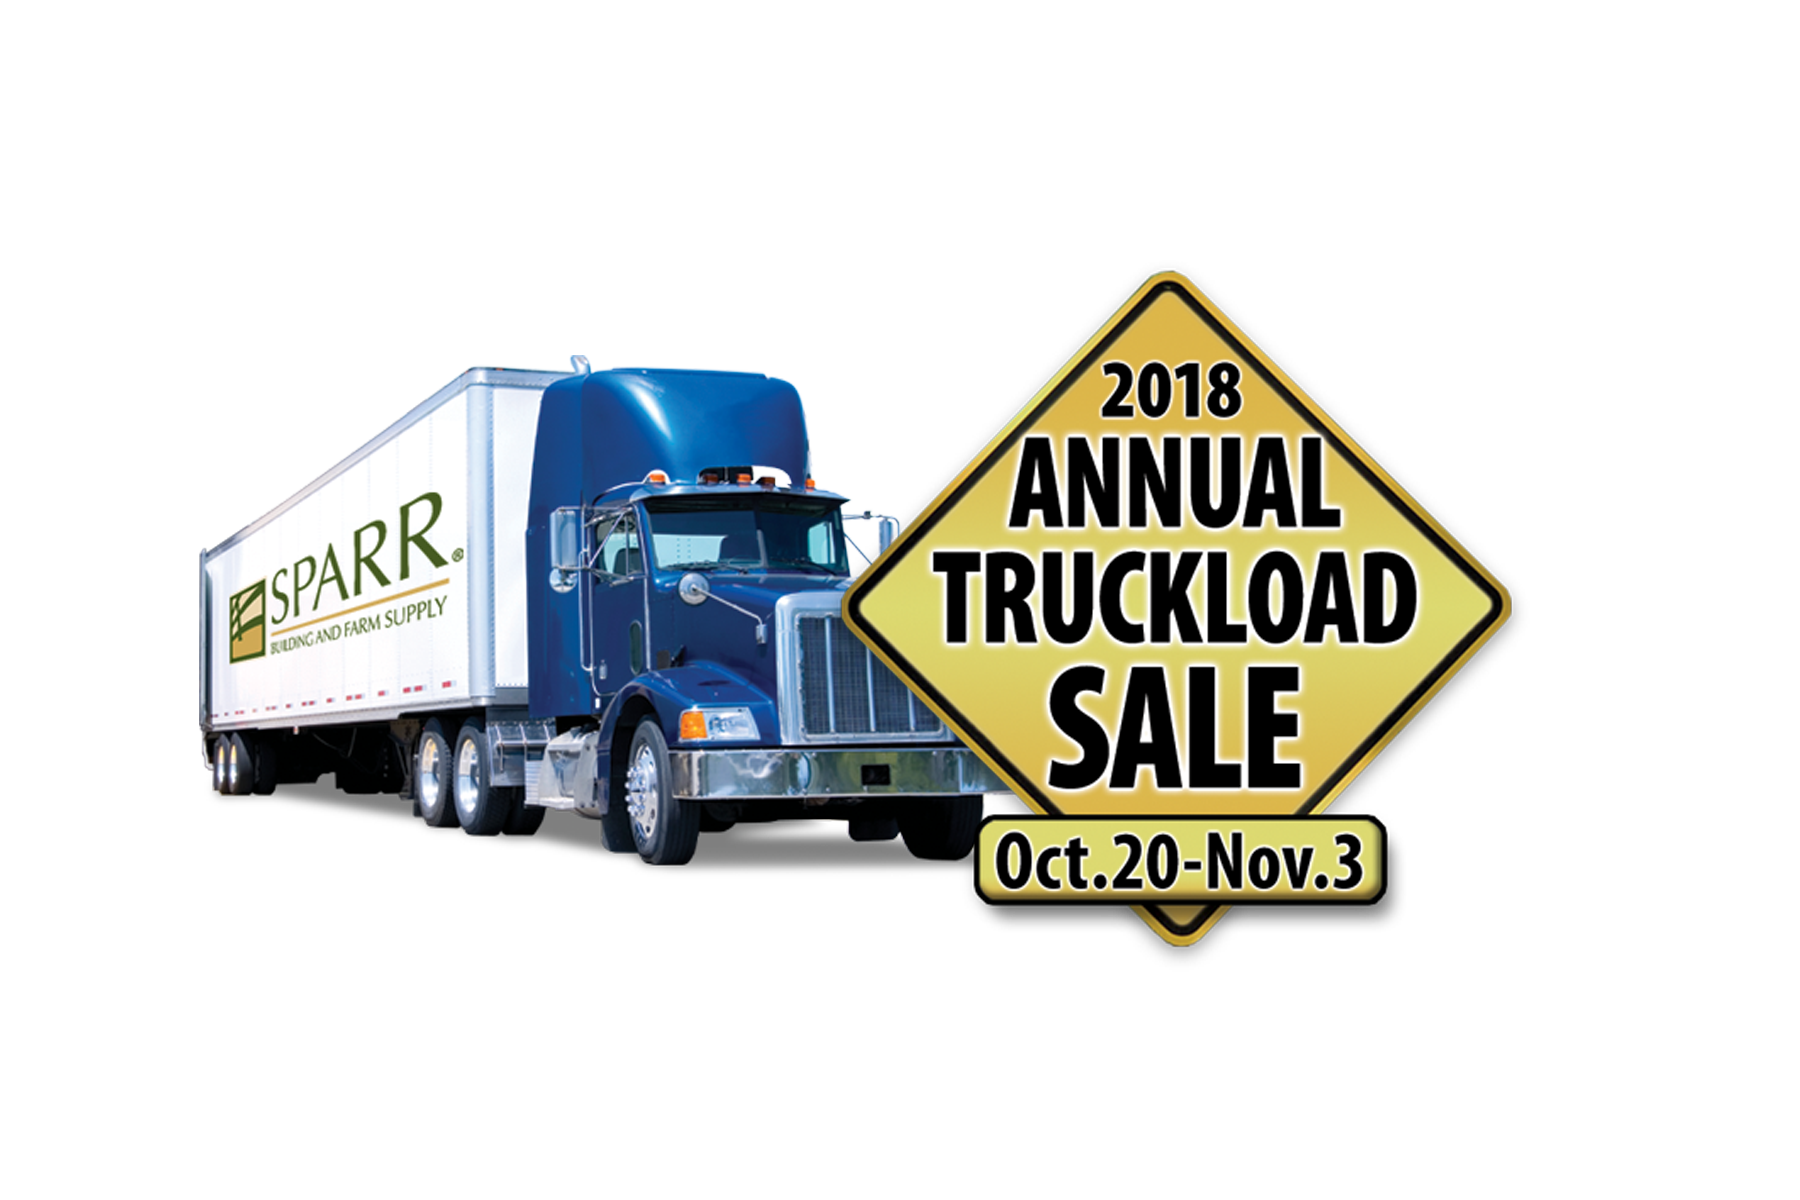 Annual Truckload Sale October 20 – November 3! Sparr Building and Farm Supply